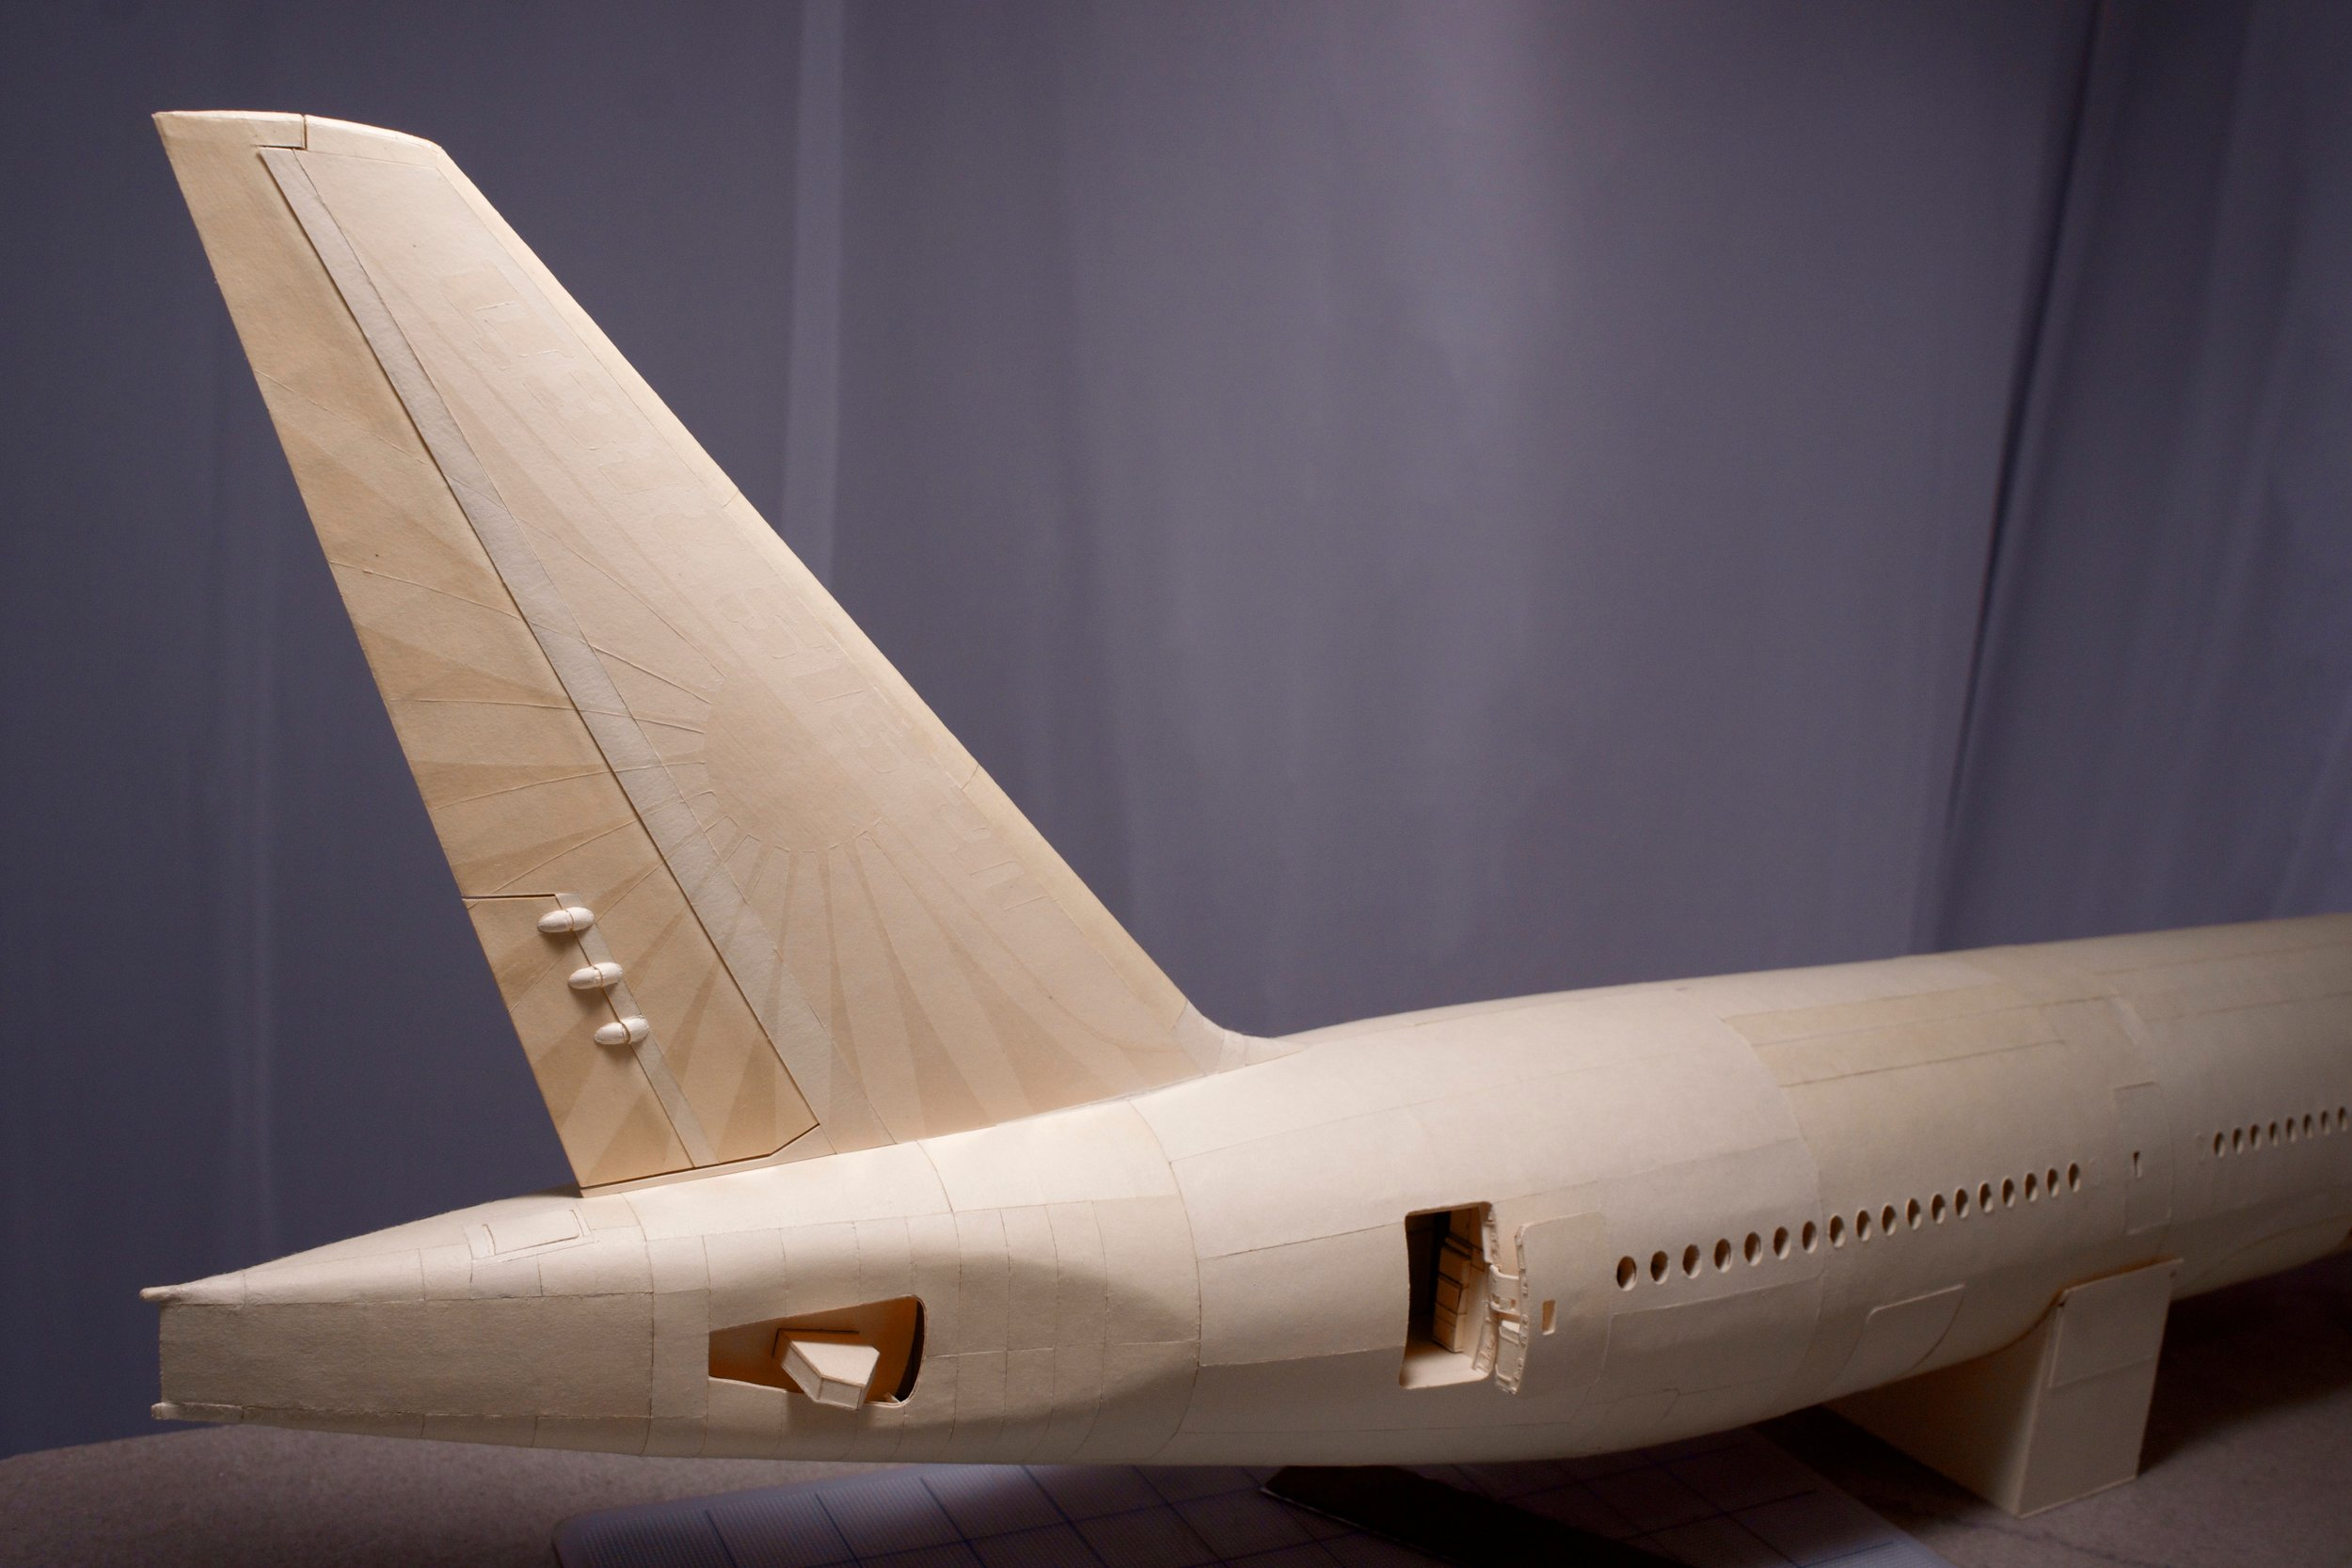 The completed tail fin